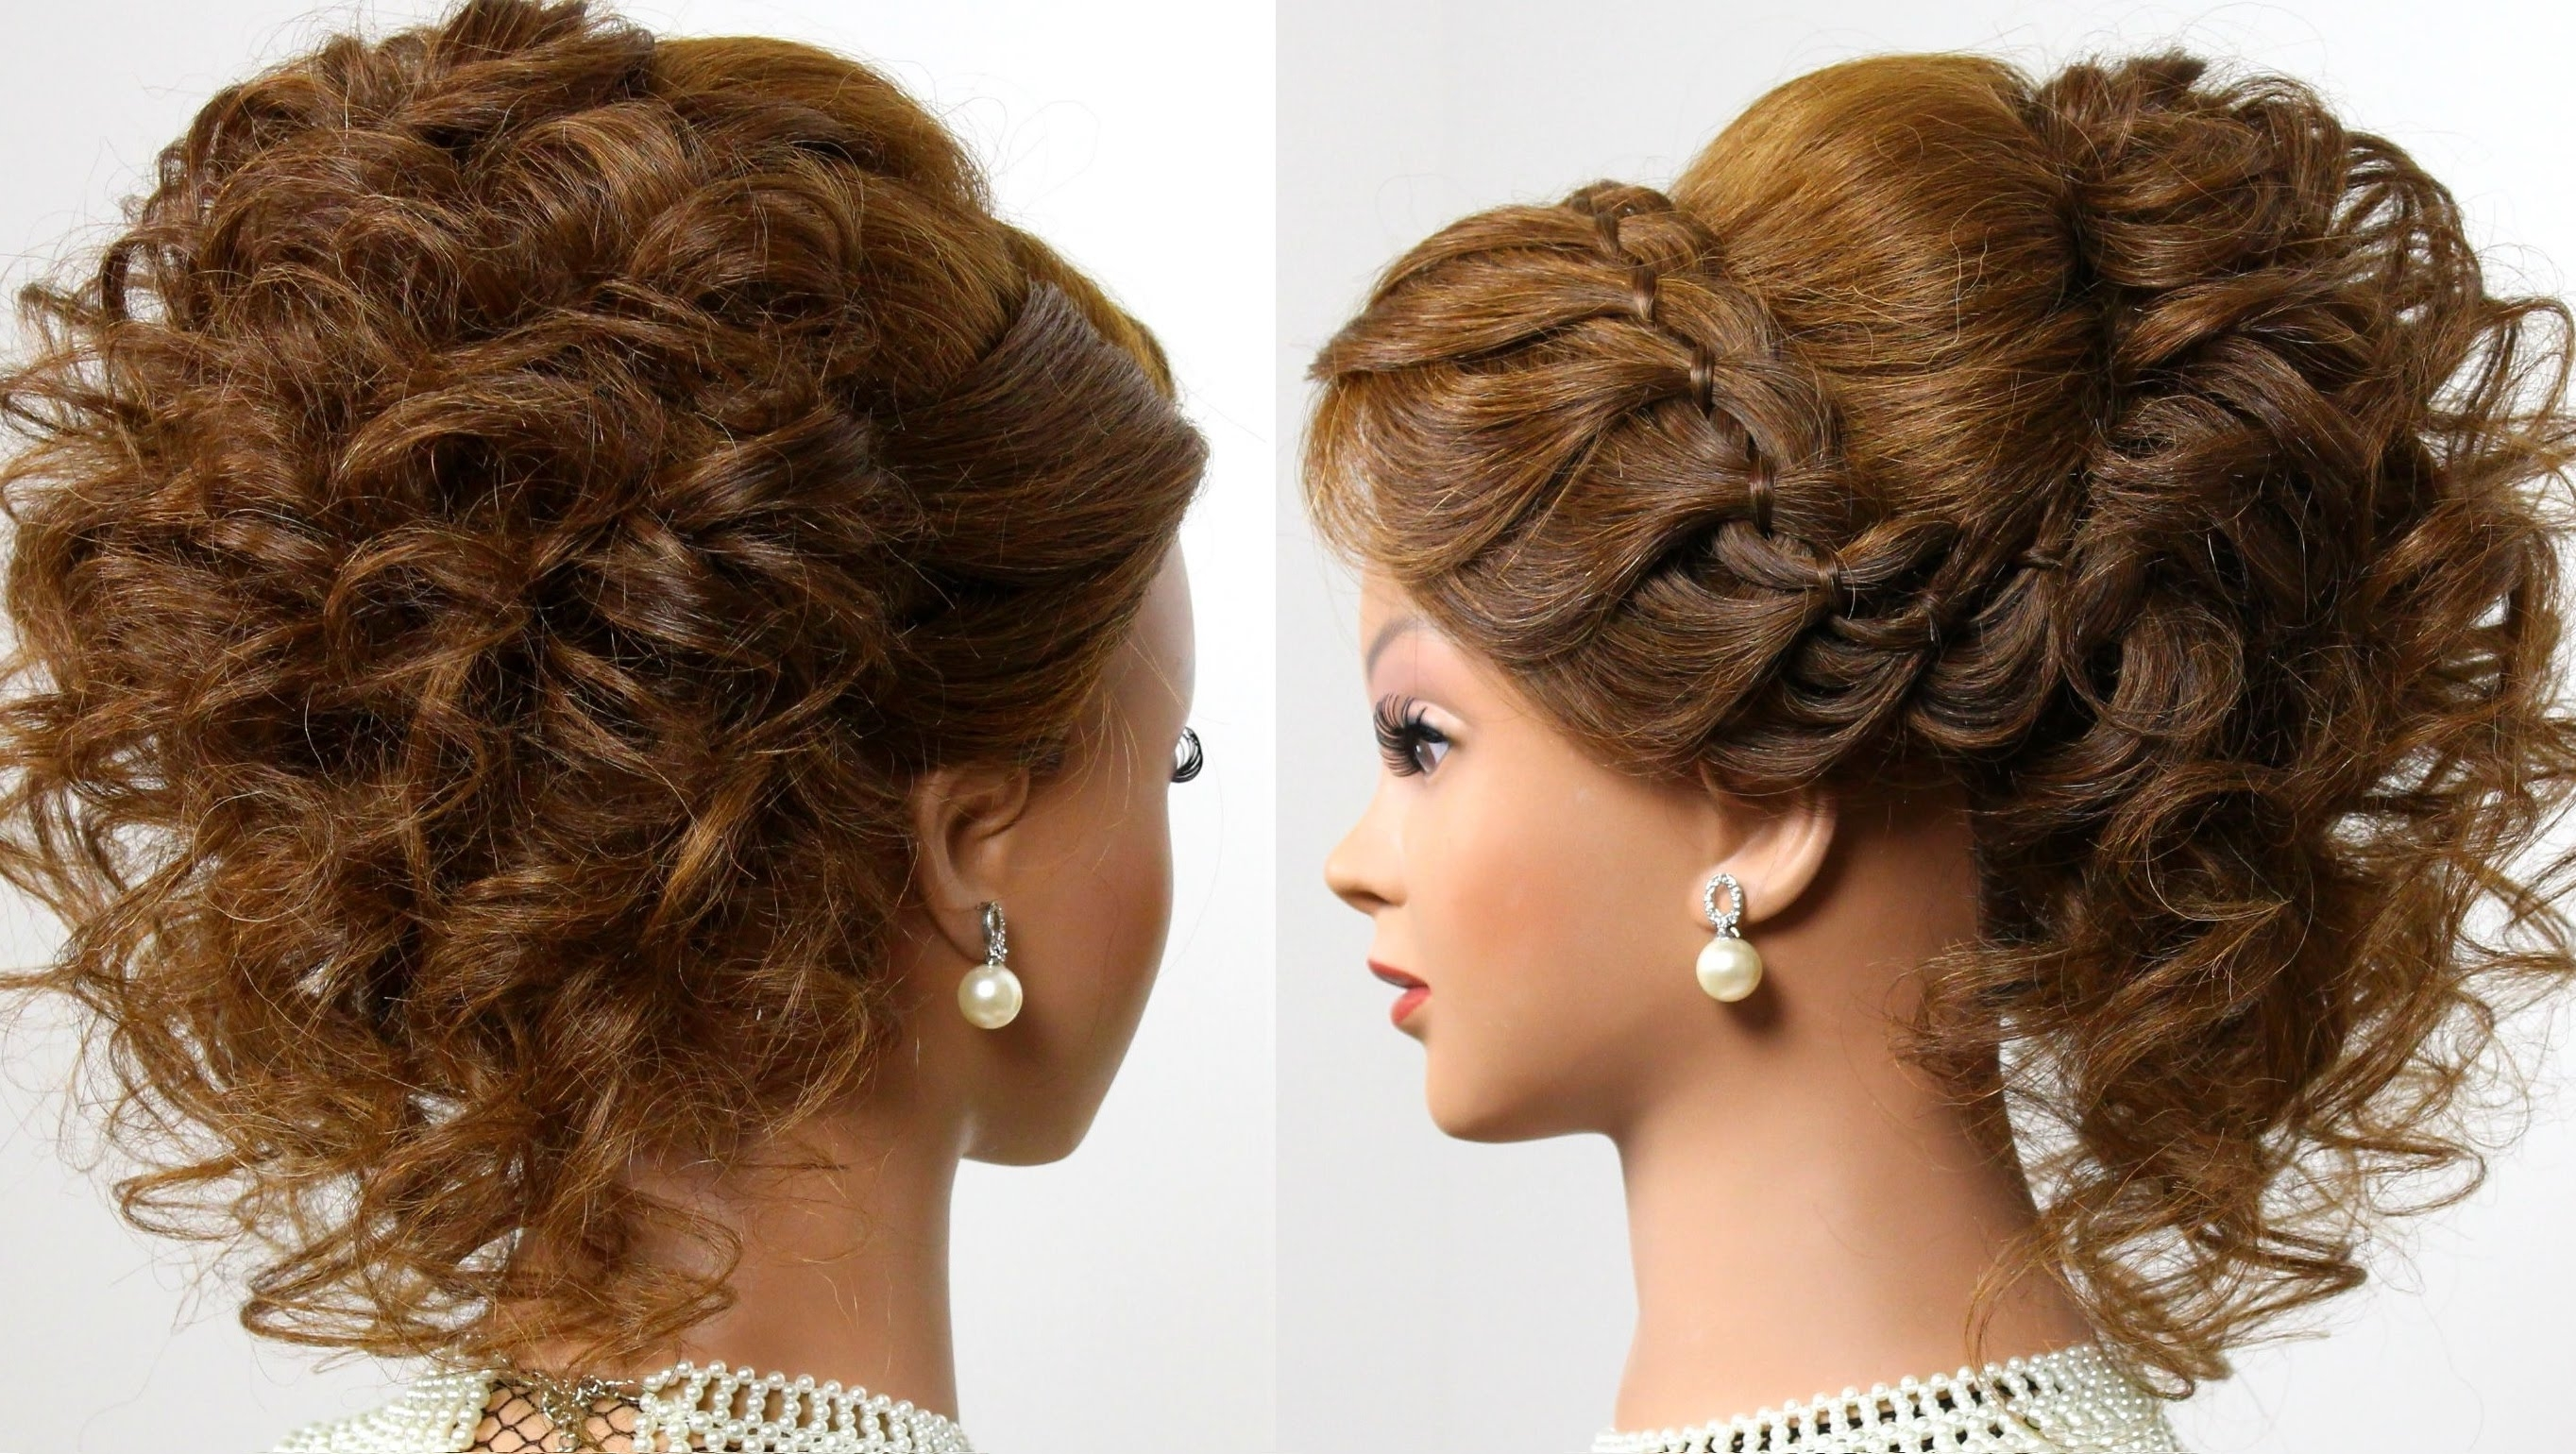 Curly Wedding Prom Hairstyle For Long Hair Sensational Romantic In Trendy Wedding Hairstyles For Long Hair Extensions (View 10 of 15)